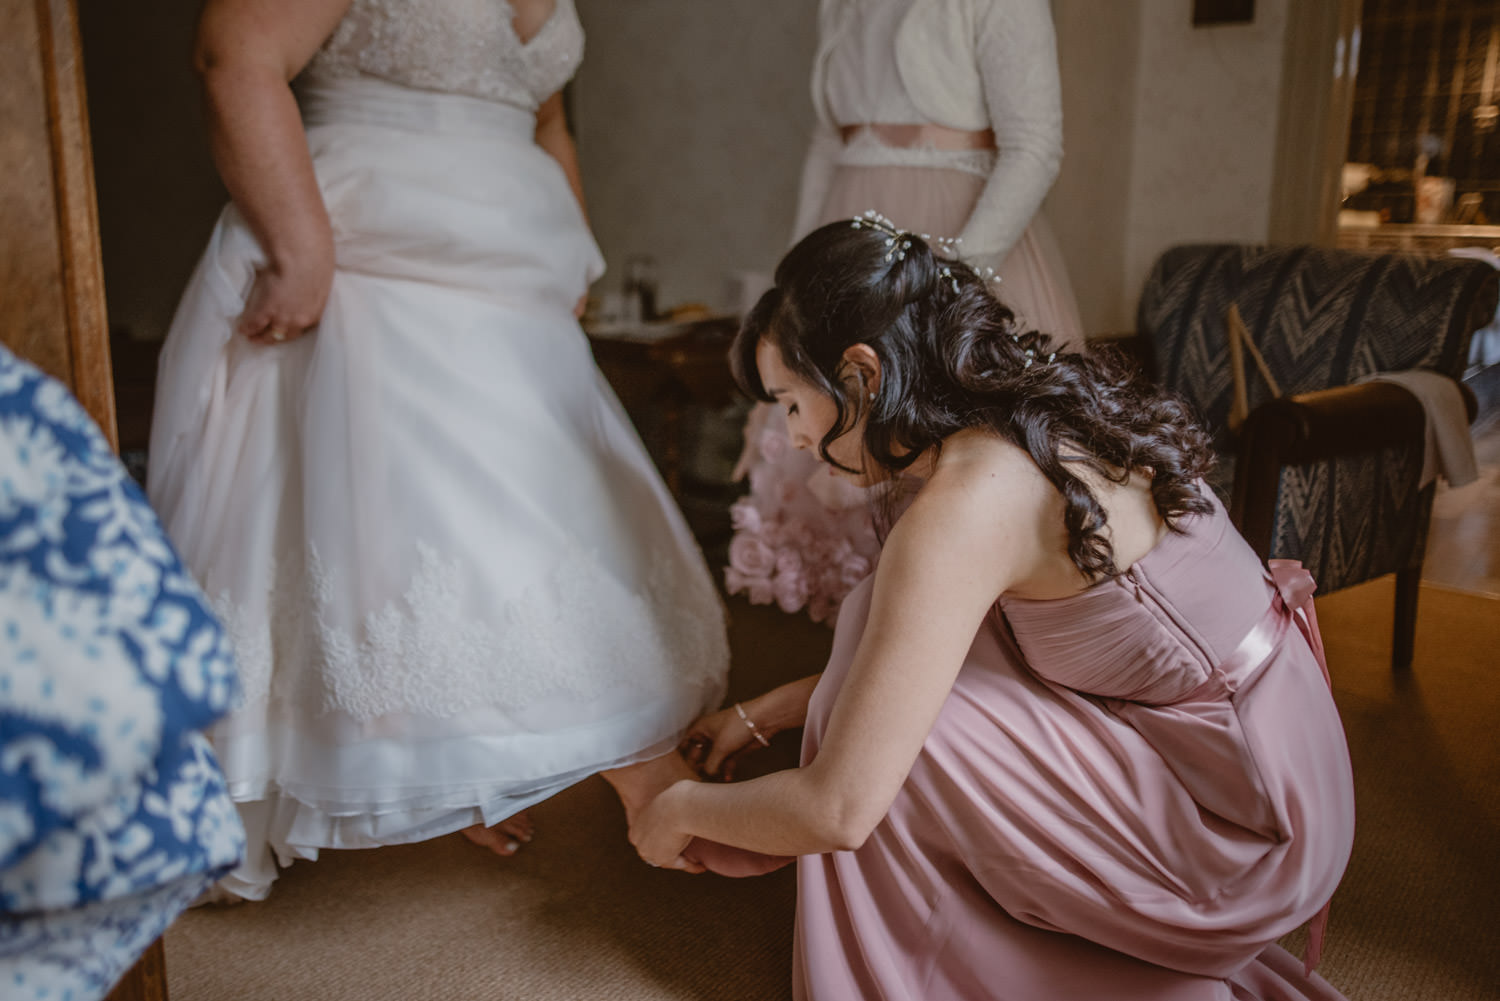 Bridesmaid helping with the wedding shoes